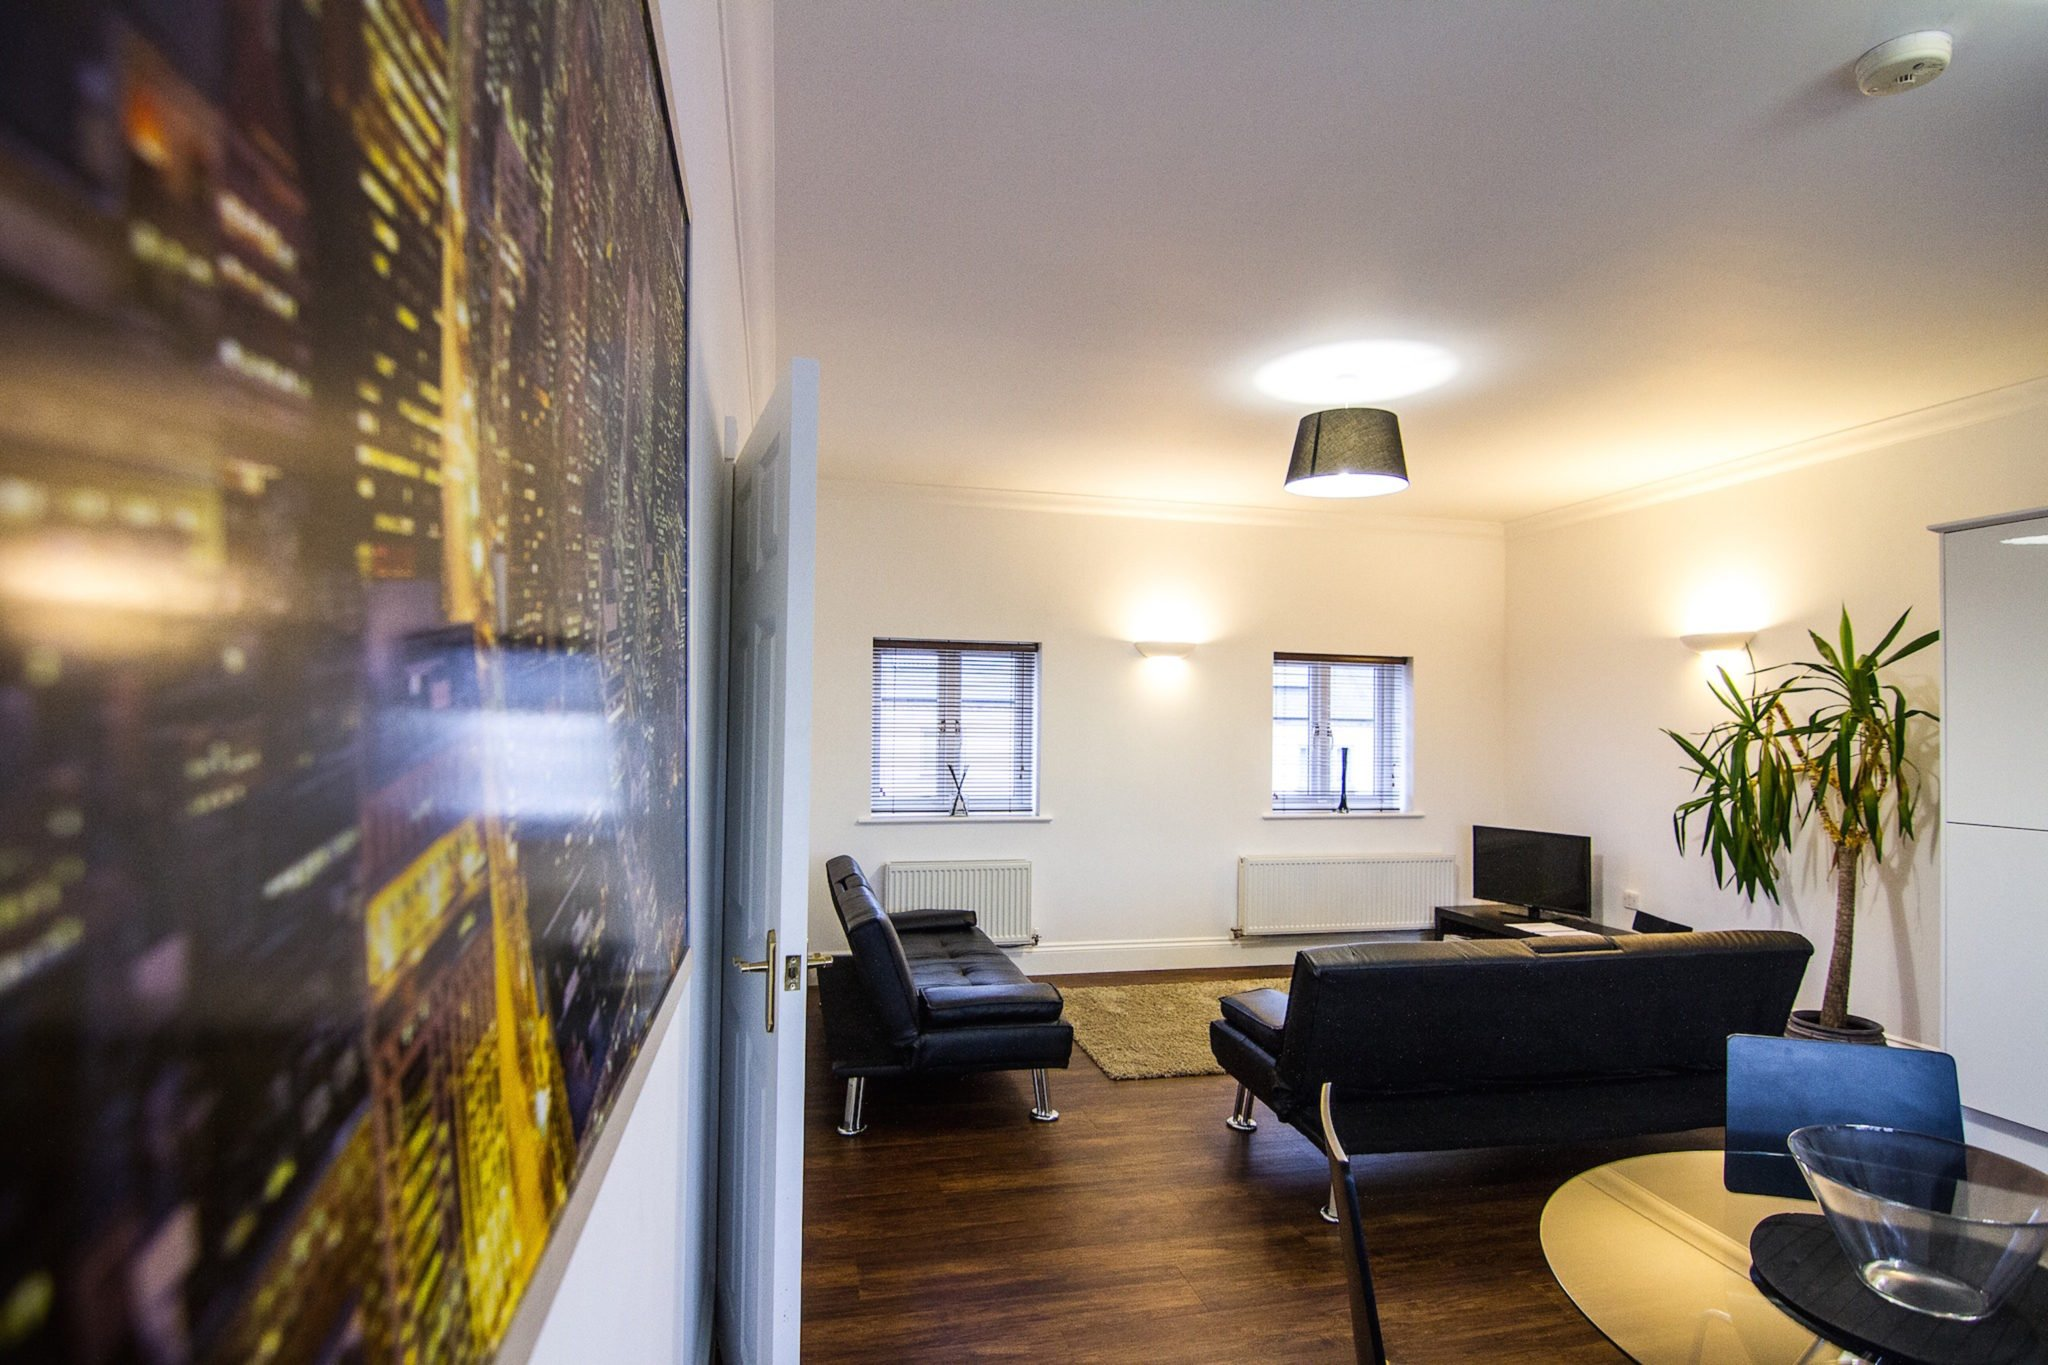 LivingroServiced-Accommodation-Northampton-City-Centre-|-Serviced-Apartments-Northampton-UK-|-Corporate-&-Holiday-Accommodation-Midlands-|-BEST-RATES---BOOK-NOW-|-Urban-Stayom-01